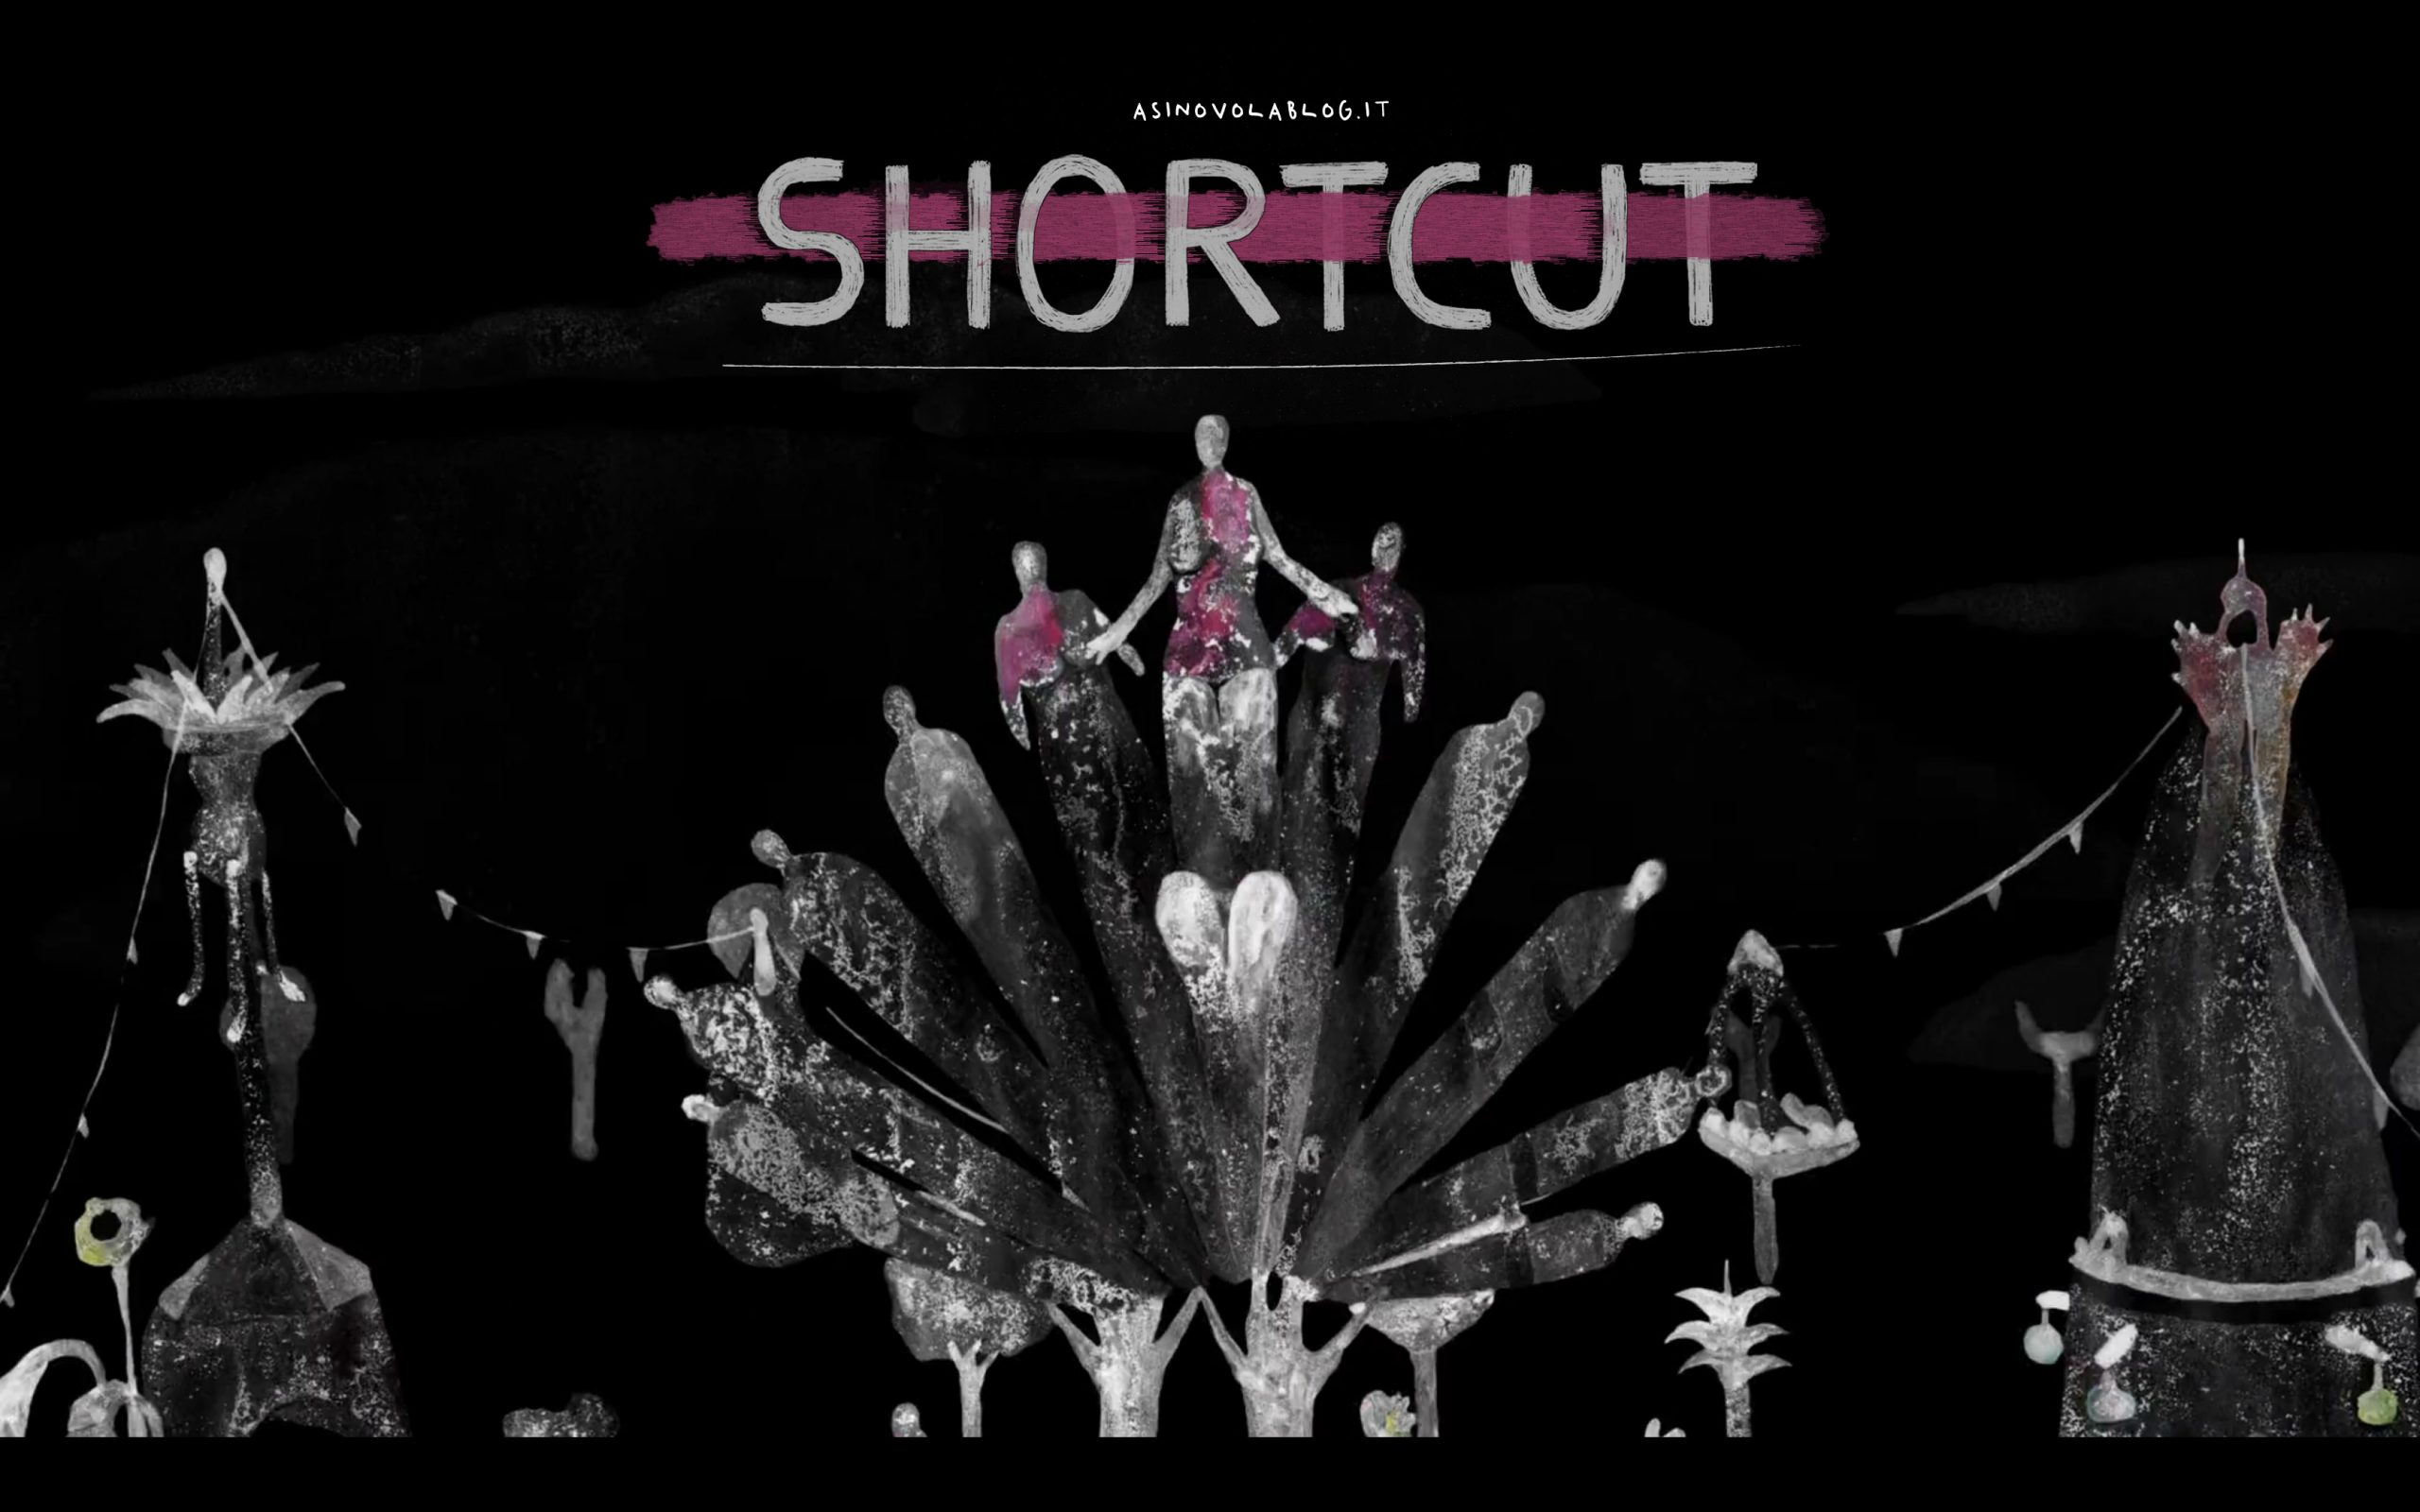 SHORTCUT #2 | Boris Labbé